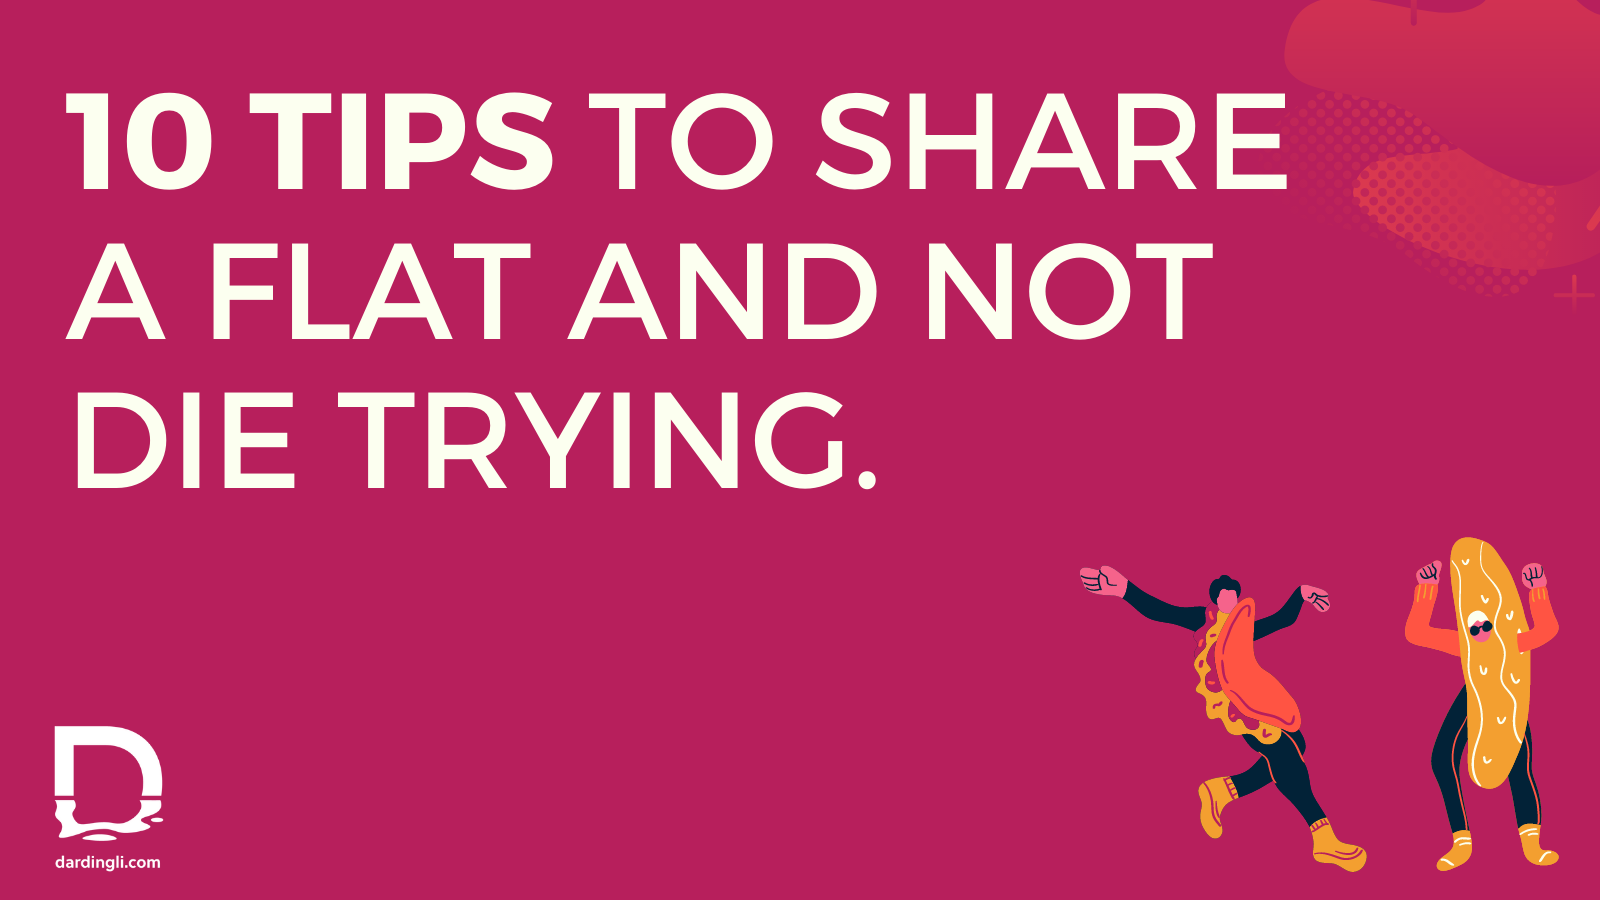 10 tips to share a flat and not die trying (and people dancing)